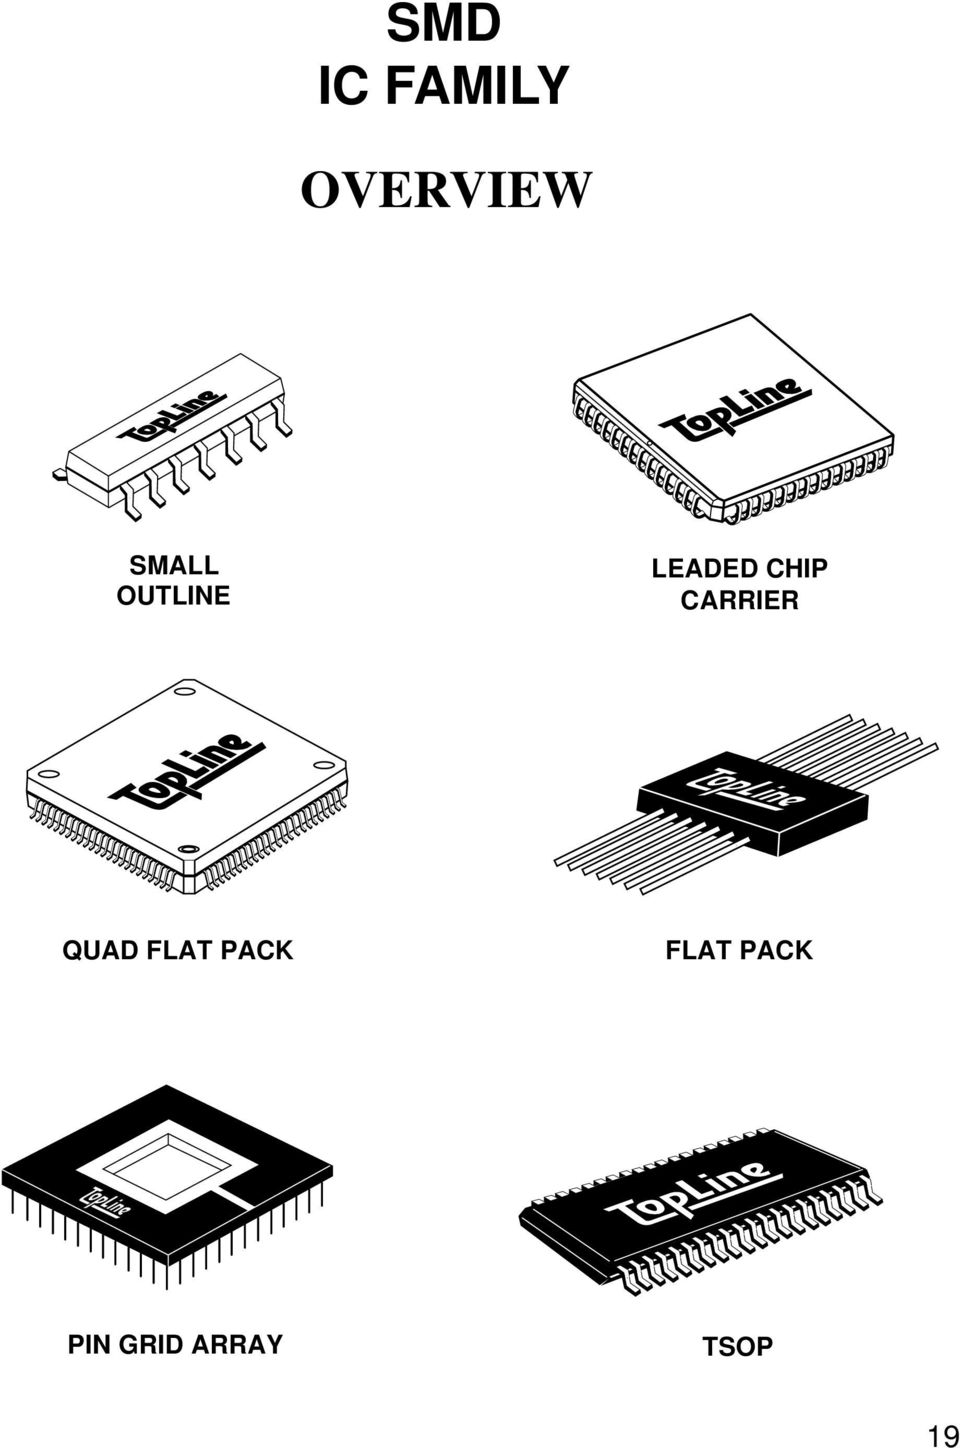 Surface Mount Nomenclature And Packaging Pdf Small Outline Integrated Circuit Soic Sop Carrier Quad Flat Pack